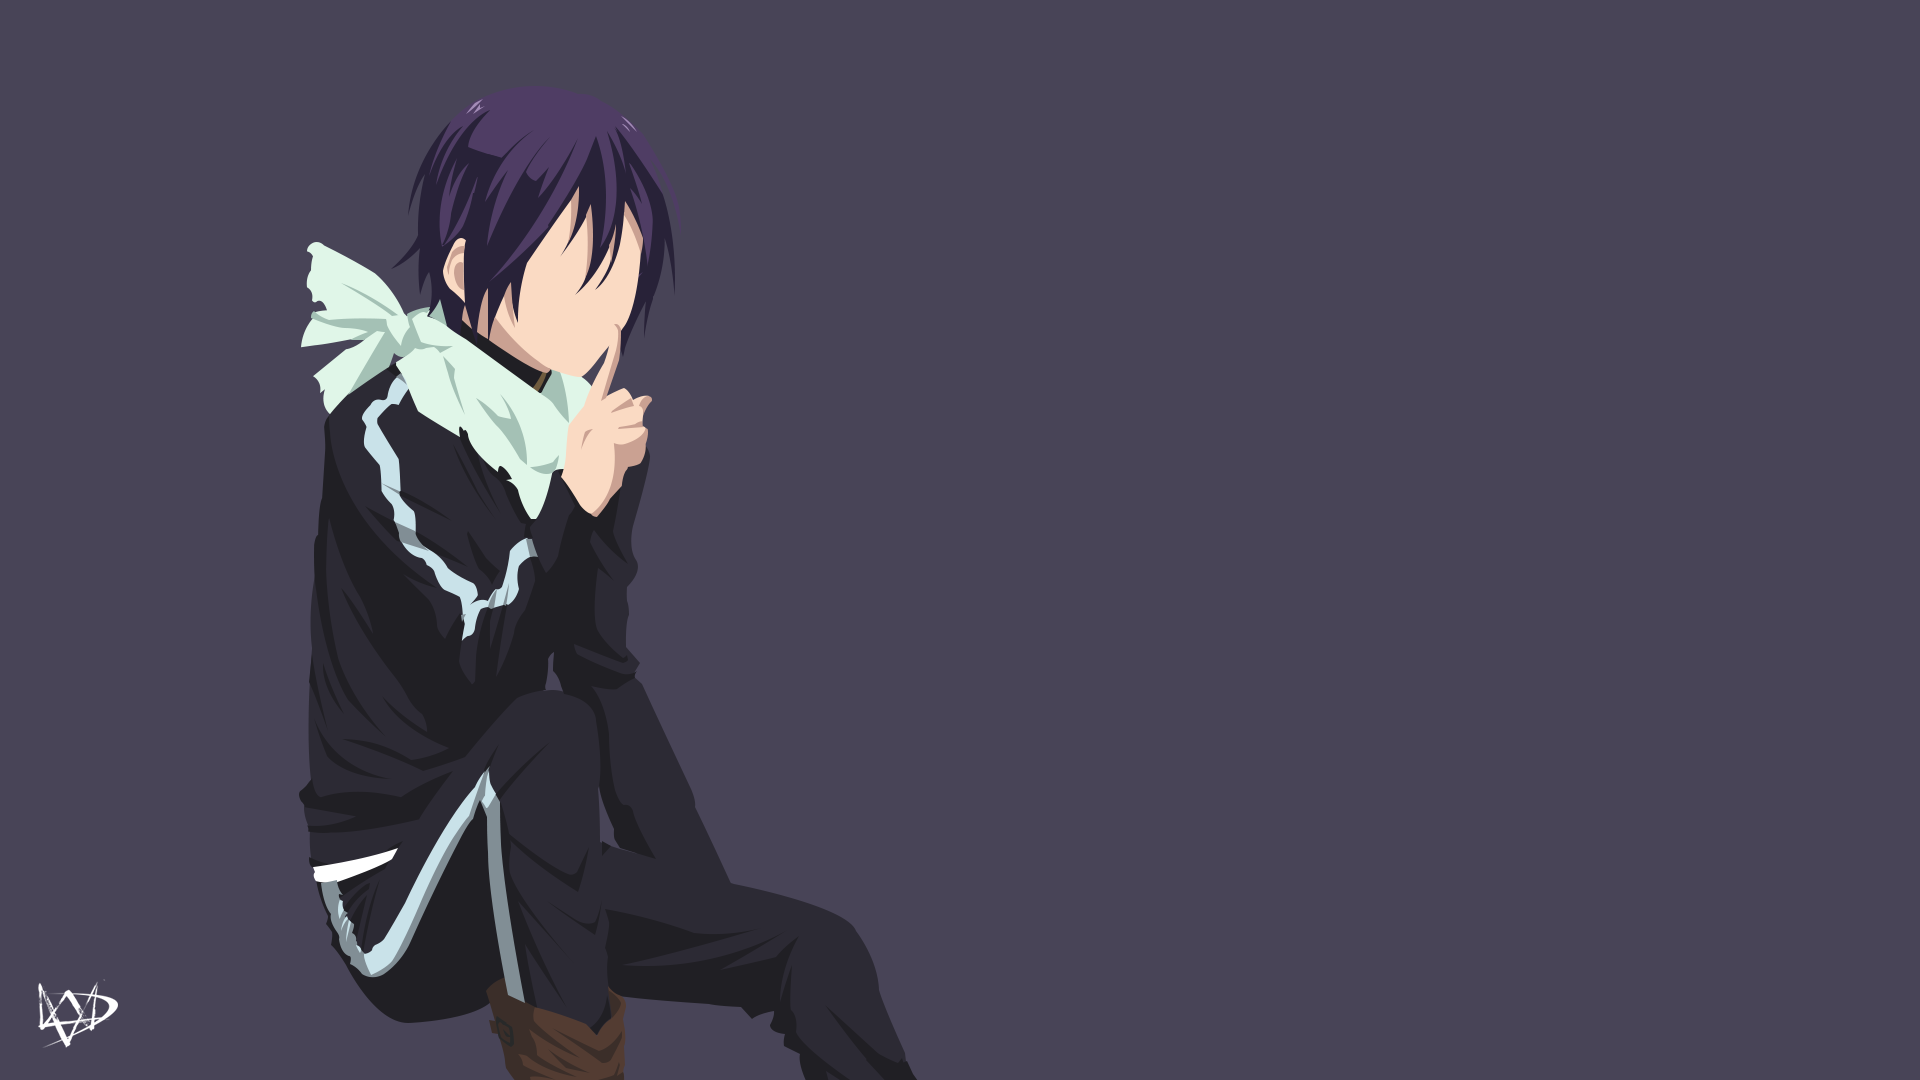 Yato V3 (Noragami) Minimalist Anime Wallpaper by ...